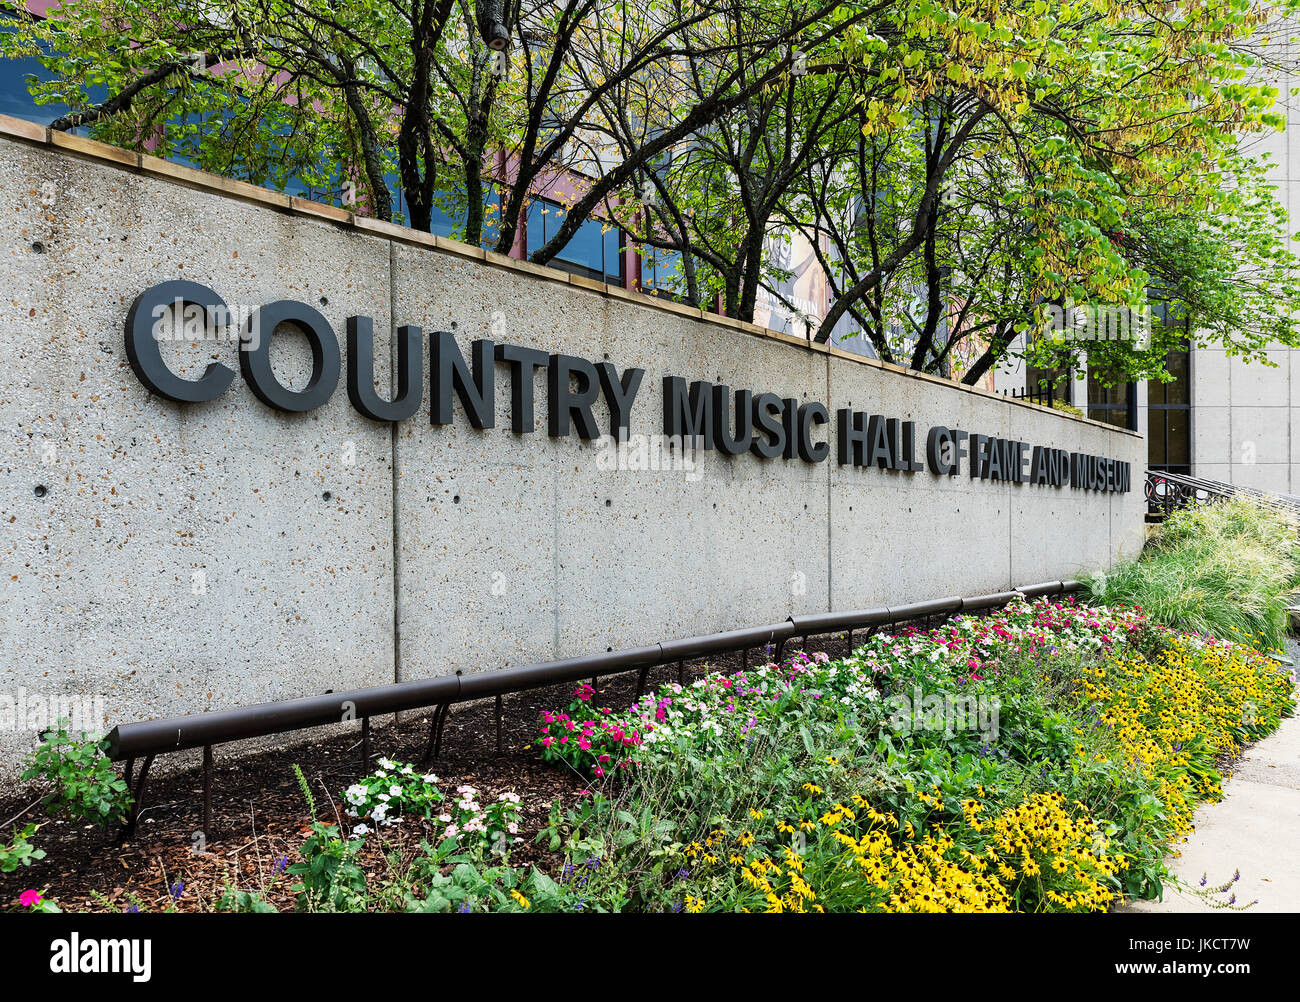 Exterior of the Country Music Hall of Fame, Nashville, Tennessee, USA. - Stock Image